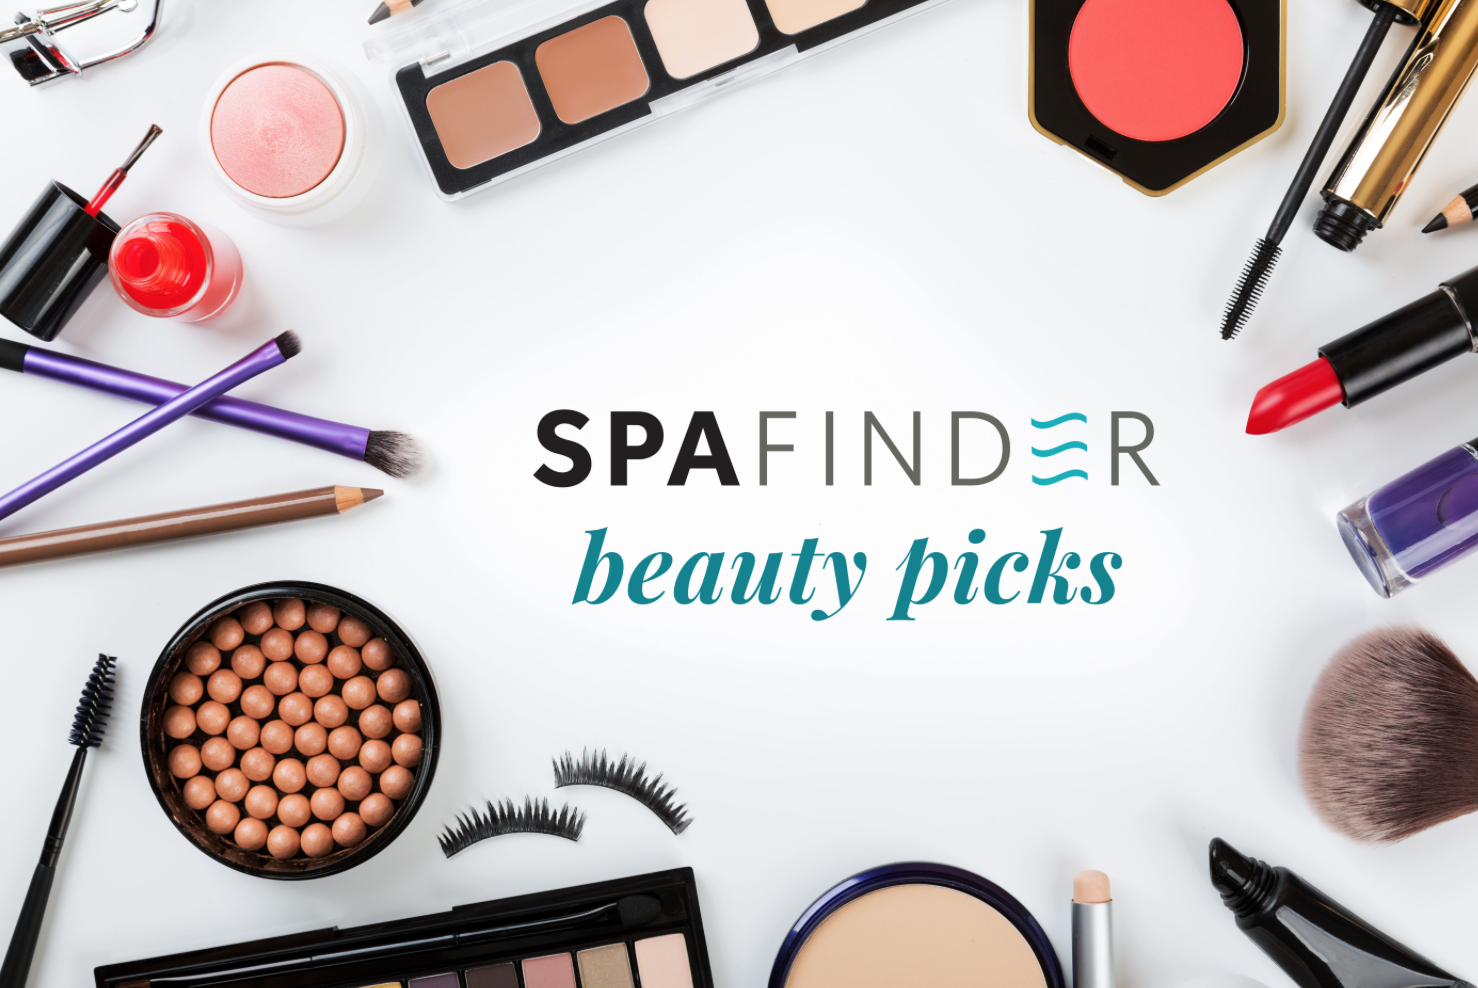 Spafinder beauty picks